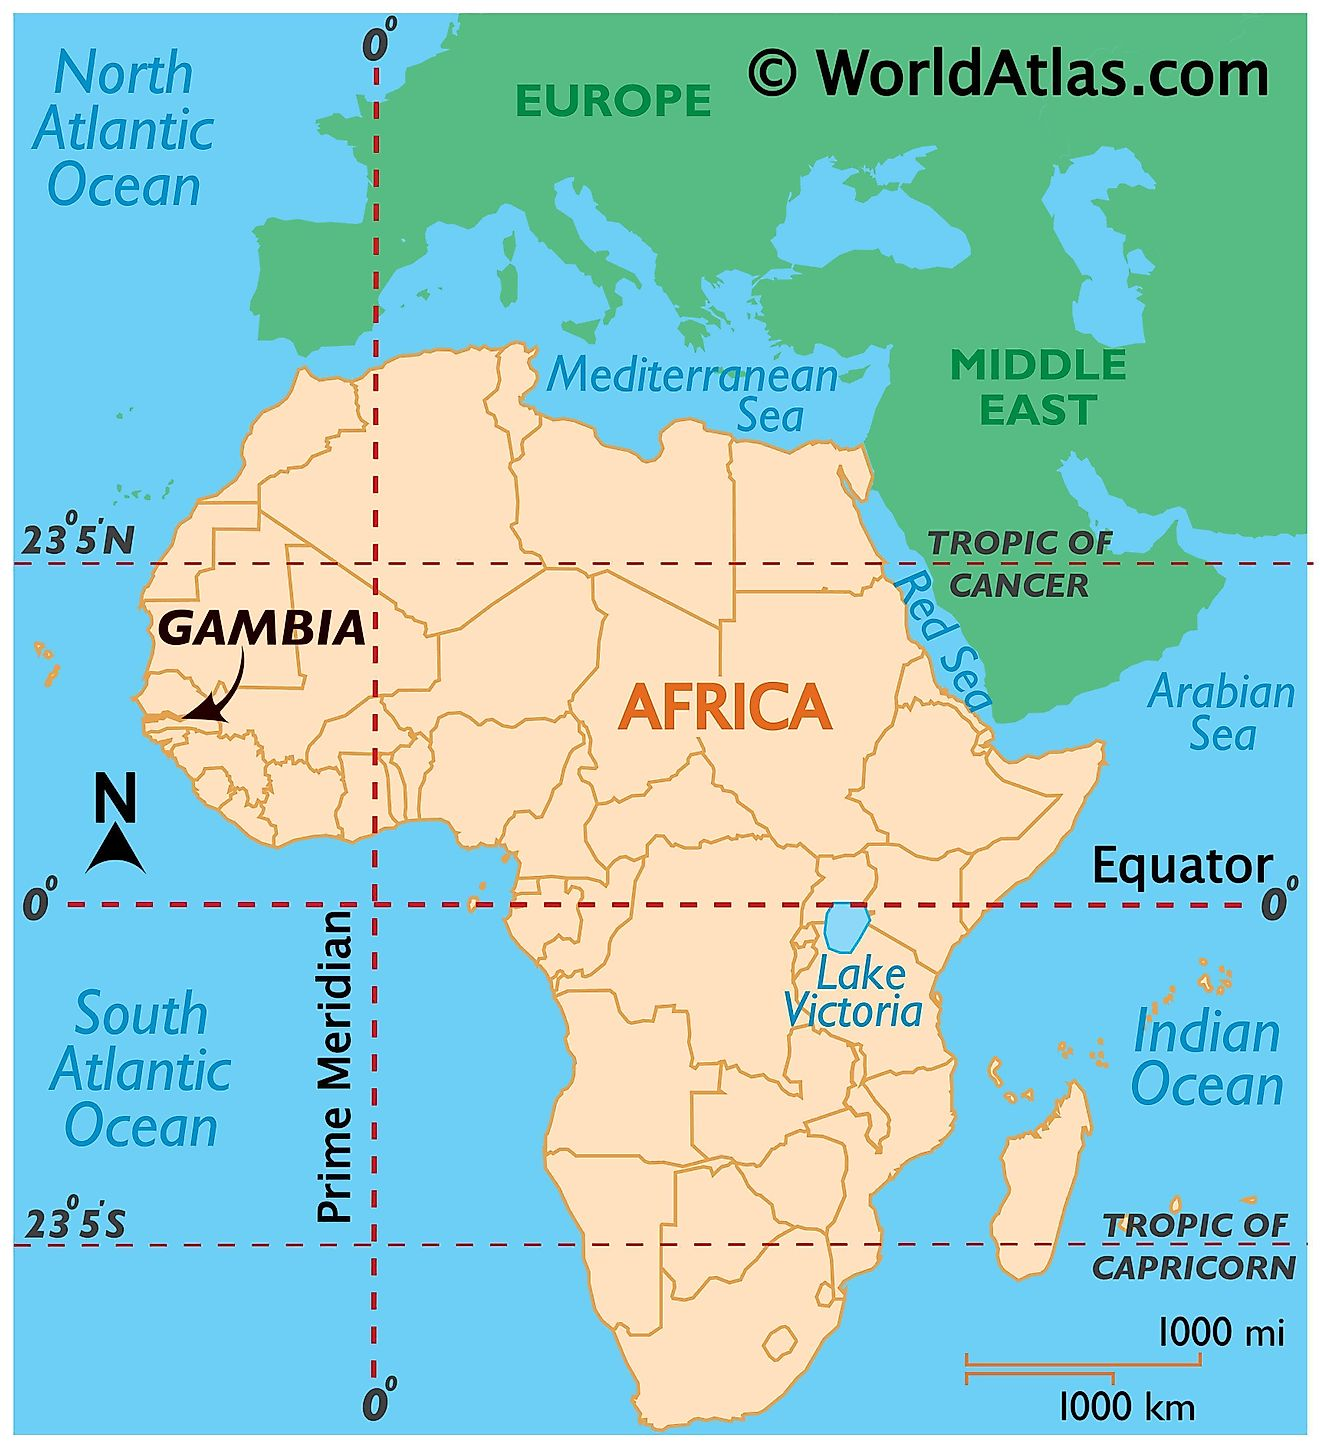 Map showing location of The Gambia in the world.